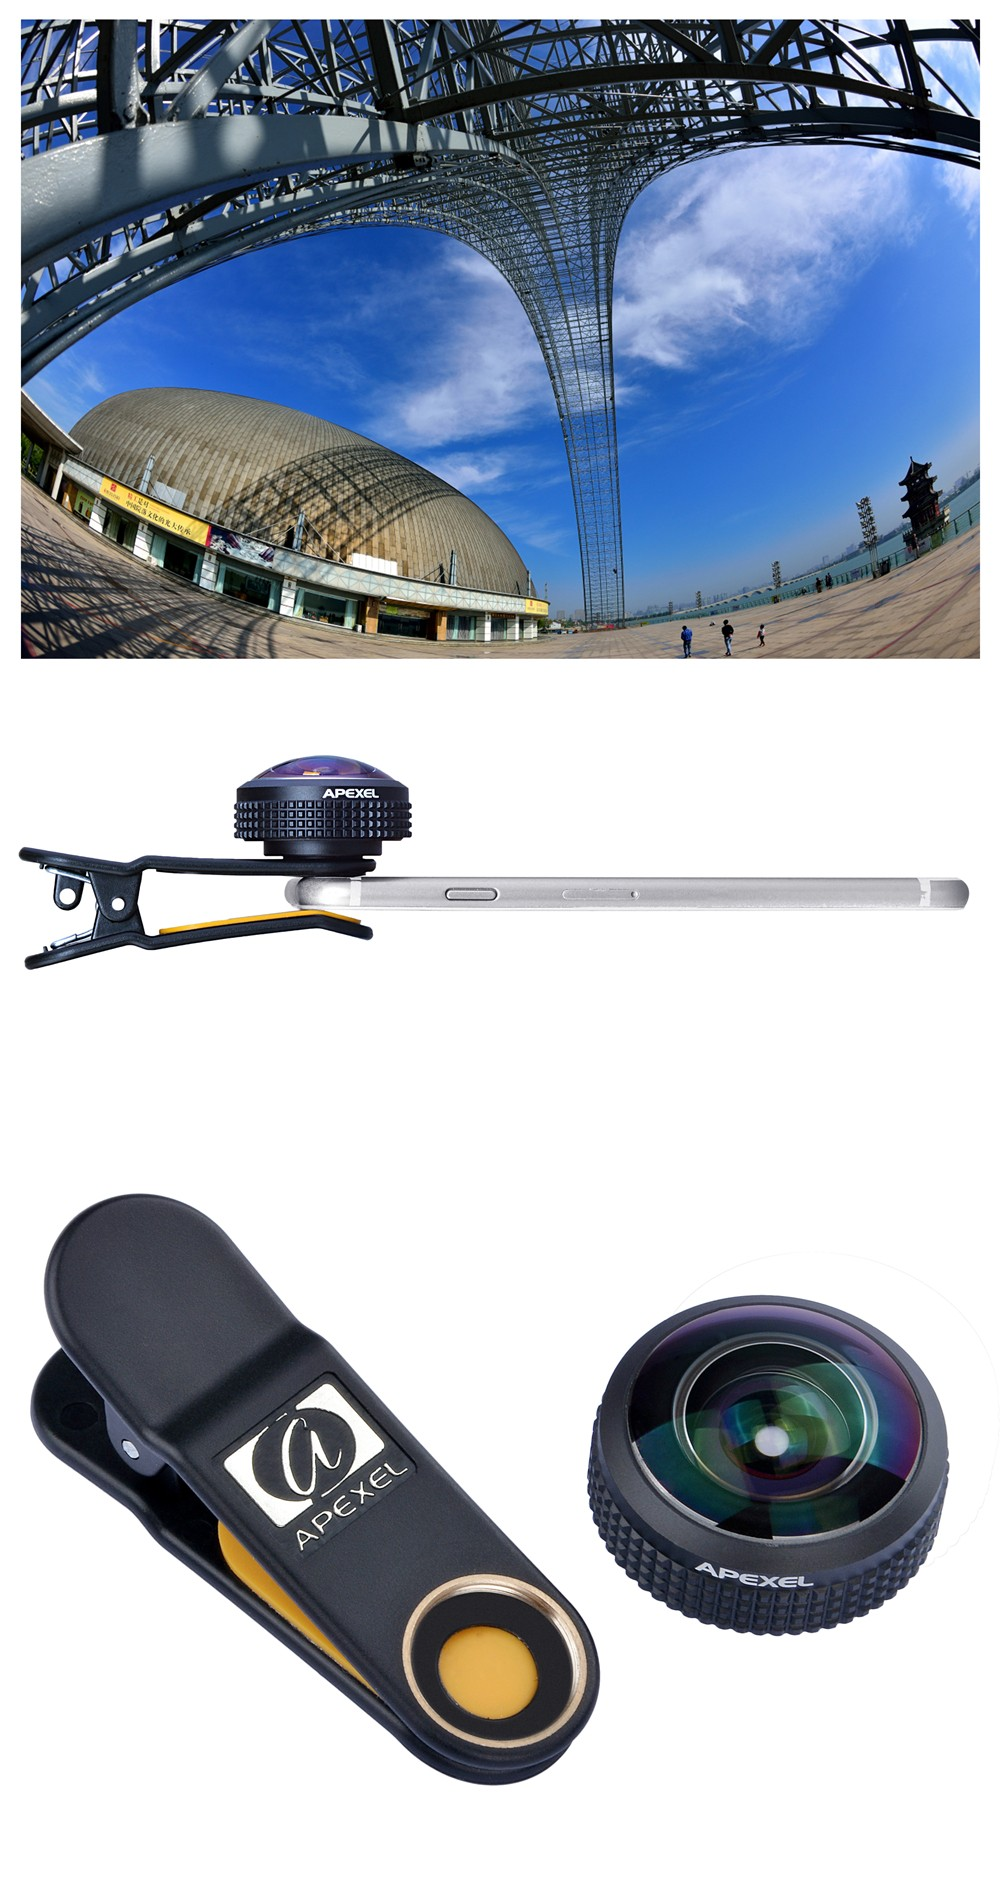 newest ee4c4 d7beb Apexel 8mm Fisheye Lens 238 Degree Super Wide Angle Cell Phone Camera Lens  For Iphone 6s Plus - Buy Fisheye Lens 238 Degree,Apexel Fisheye Lens,Apexel  ...